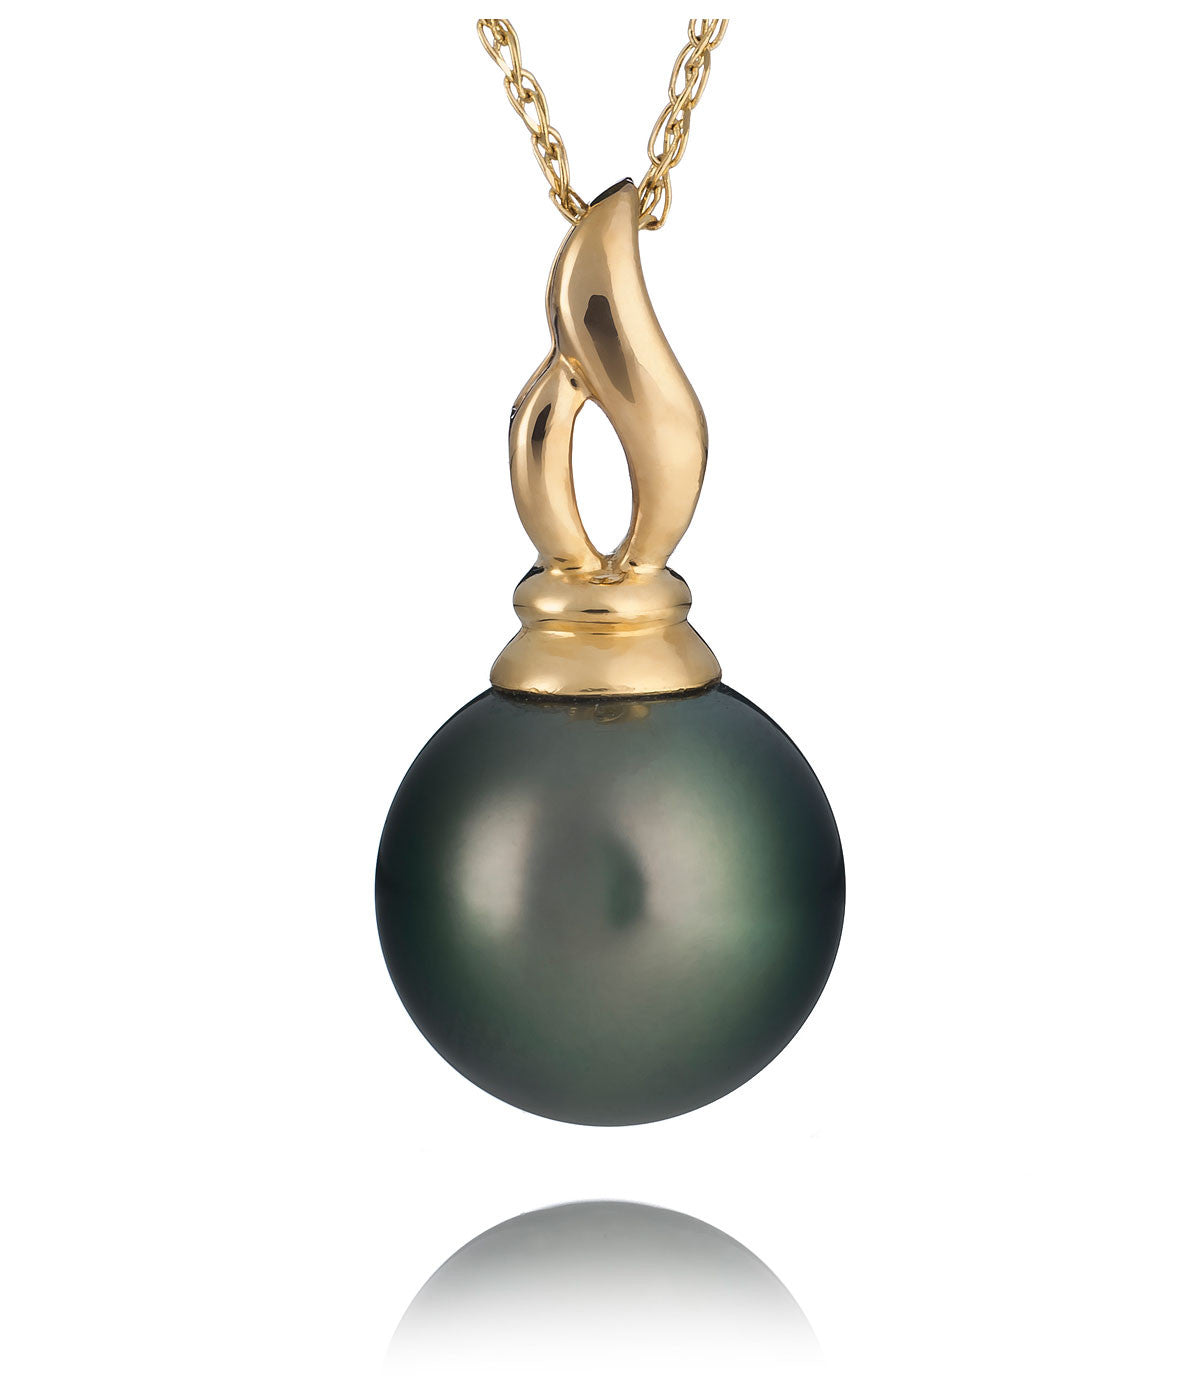 Muse tahitian pearl pendant necklace pearl lang muse tahitian pearl pendant necklace mozeypictures Gallery